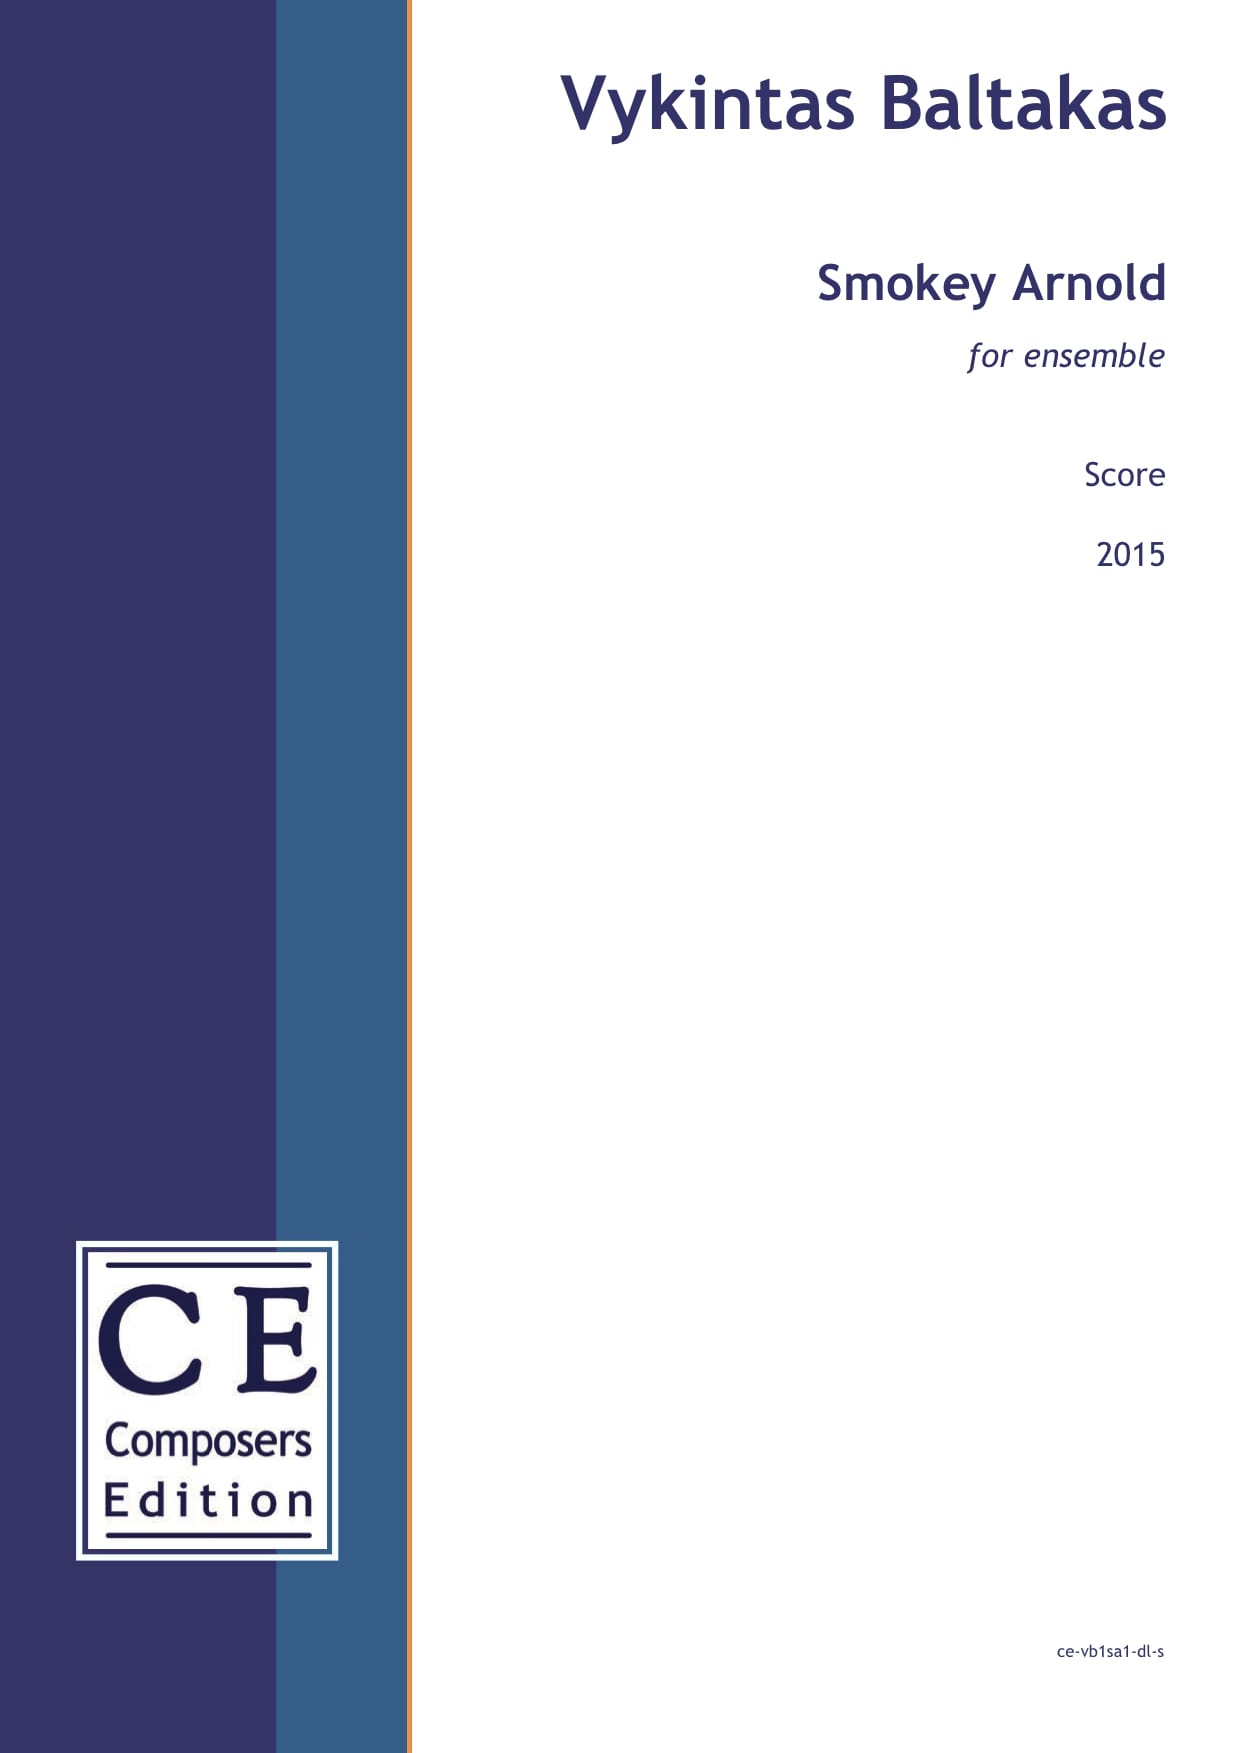 Vykintas Baltakas: Smokey Arnold for ensemble